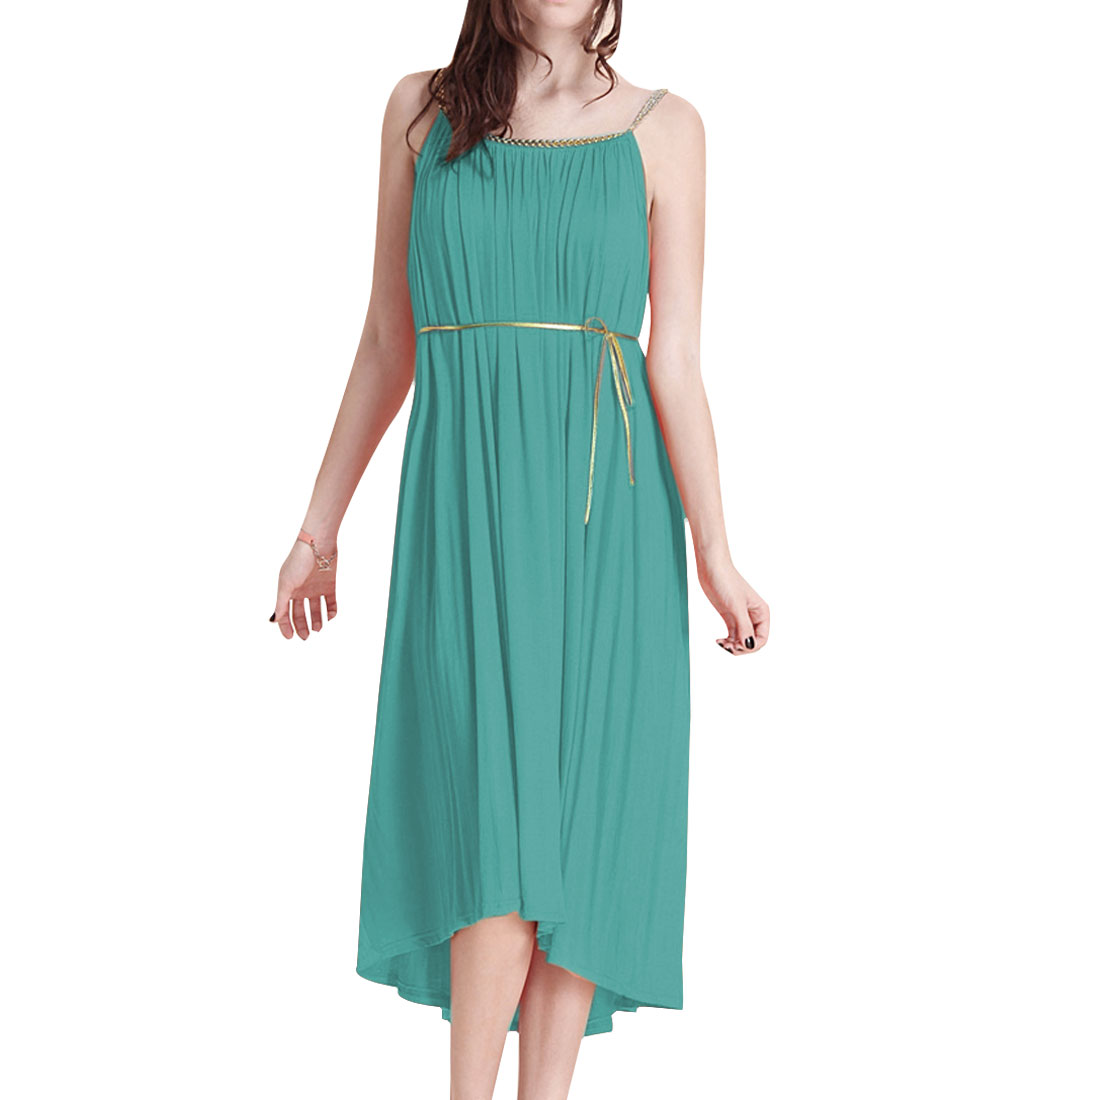 Lady Summer Sleeveless Half Backless Aqua Pleated Dress M